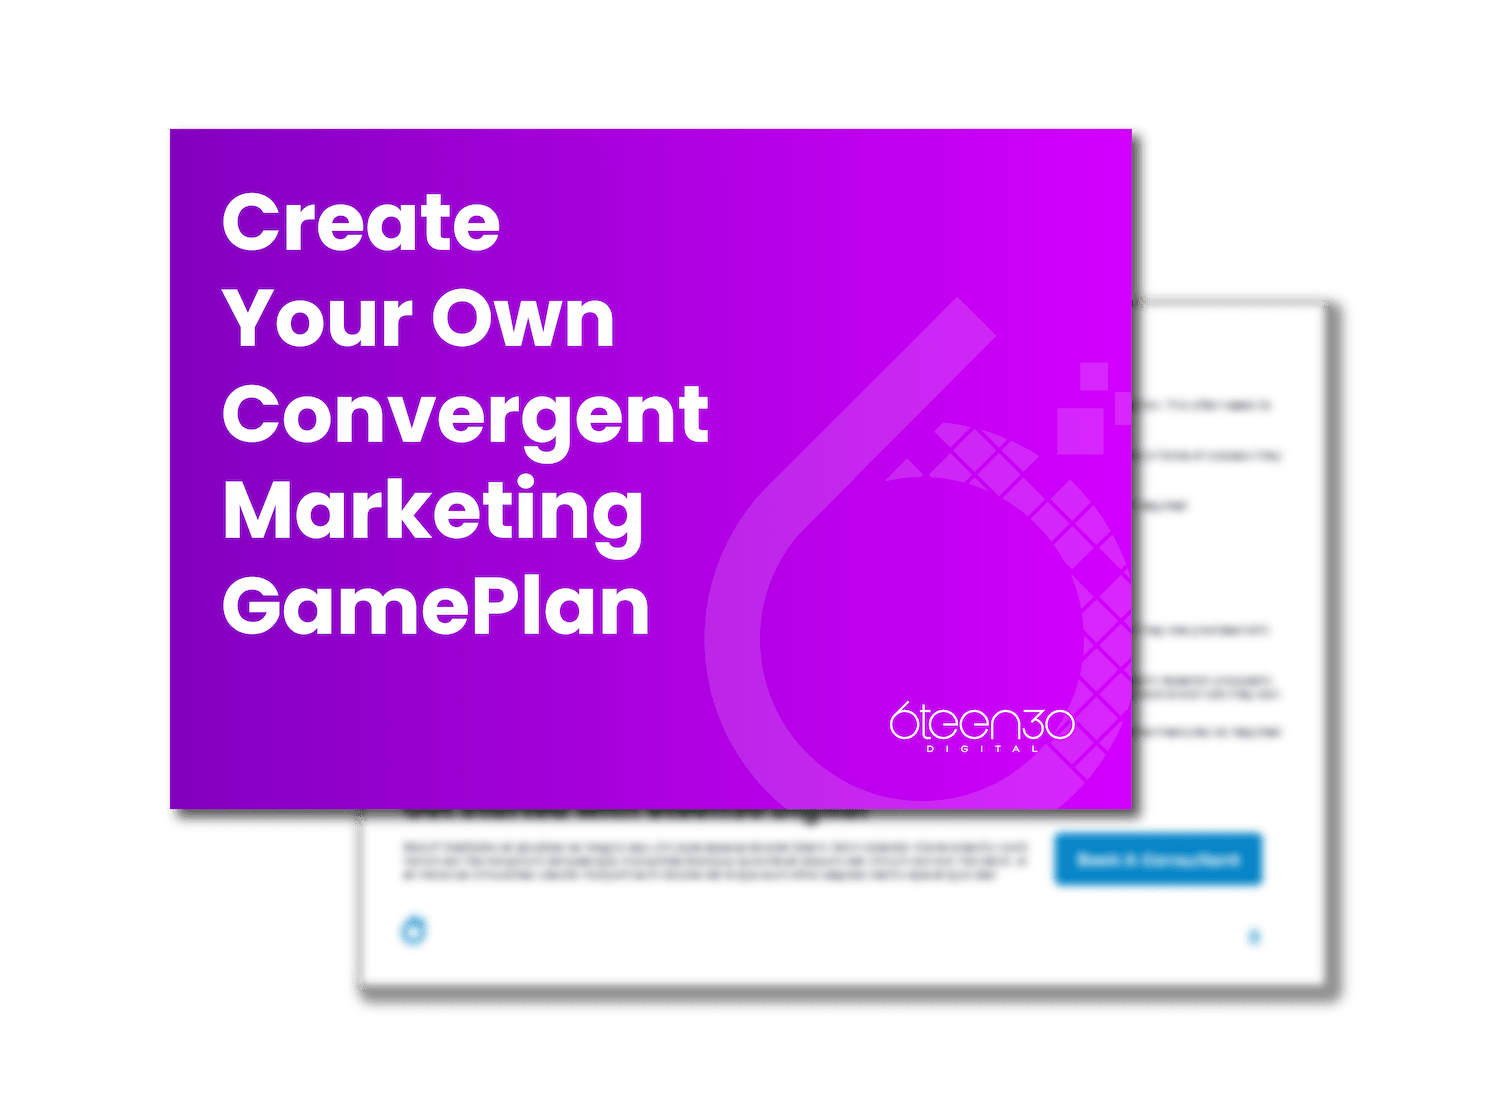 6teen30 - 3D Covers_How To Build Your Convergent Marketing Game Plan